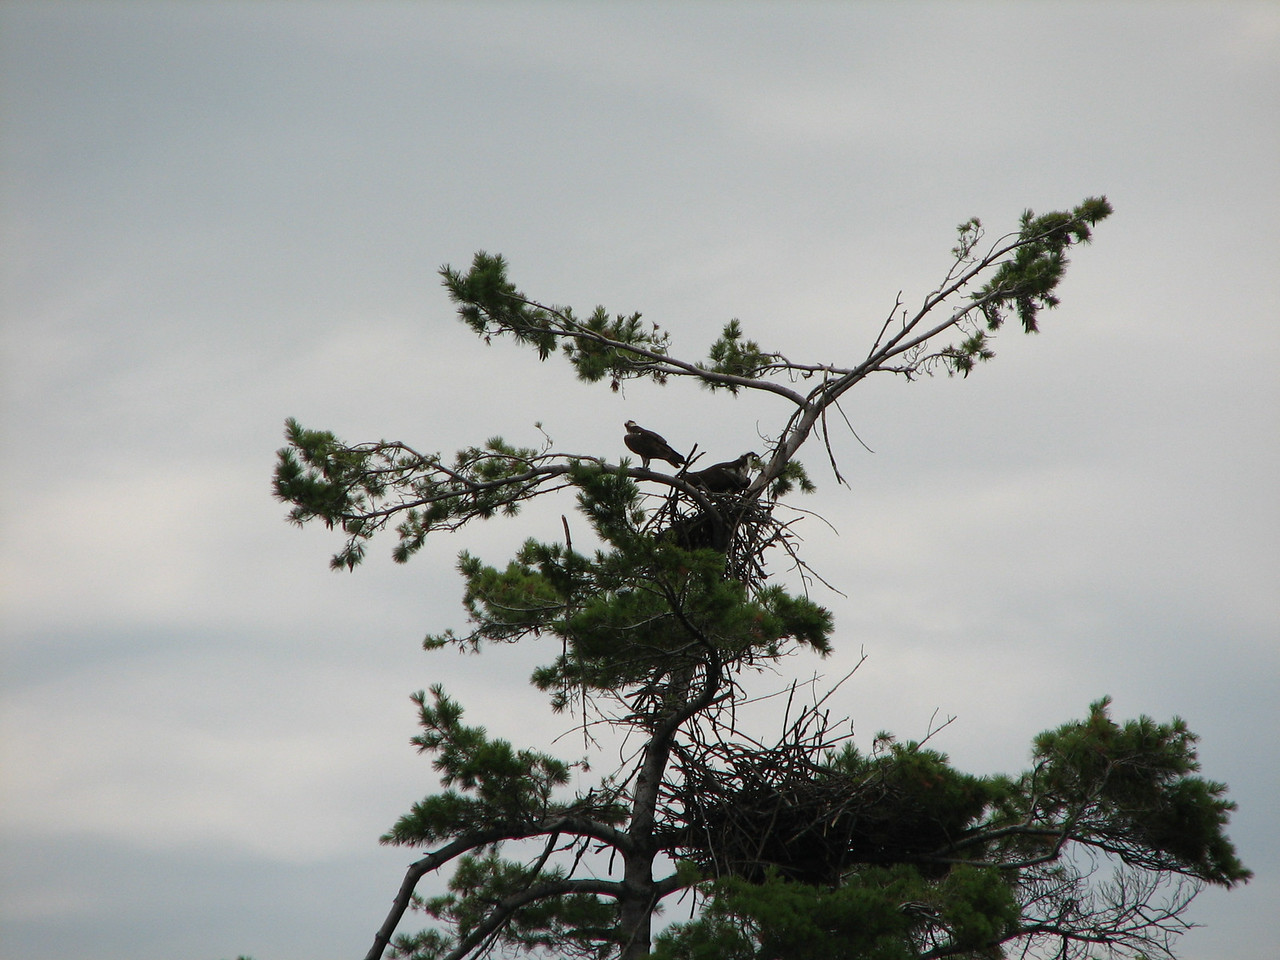 Two osprey are visible on this tree.